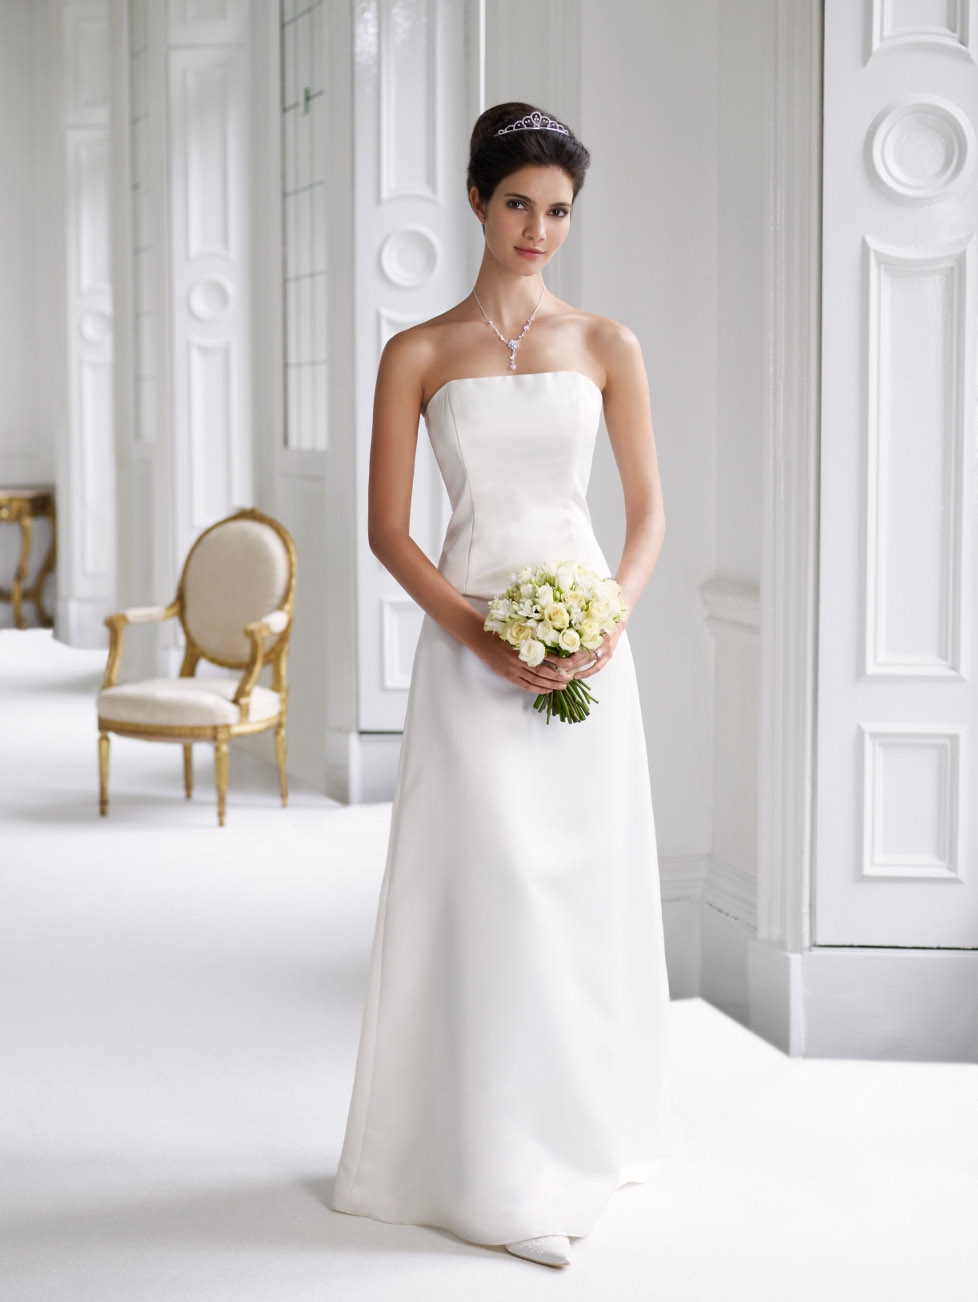 Wedding Dress Elegant Classic : Traditional formal wedding dresses white inspiration trends